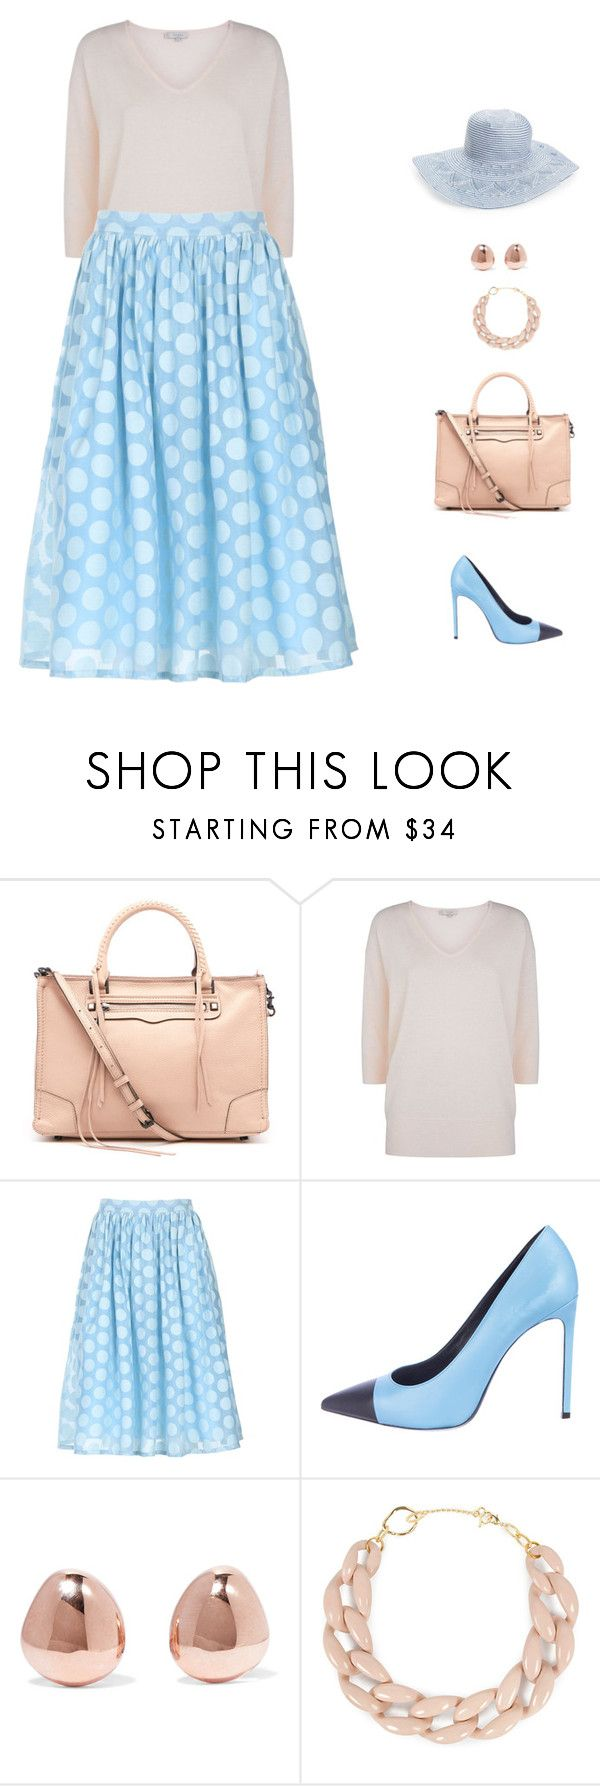 """elegance"" by candynena228 ❤ liked on Polyvore featuring Rebecca Minkoff, Hobbs, Izabel London, Yves Saint Laurent, Monica Vinader, DIANA BROUSSARD and Hinge"